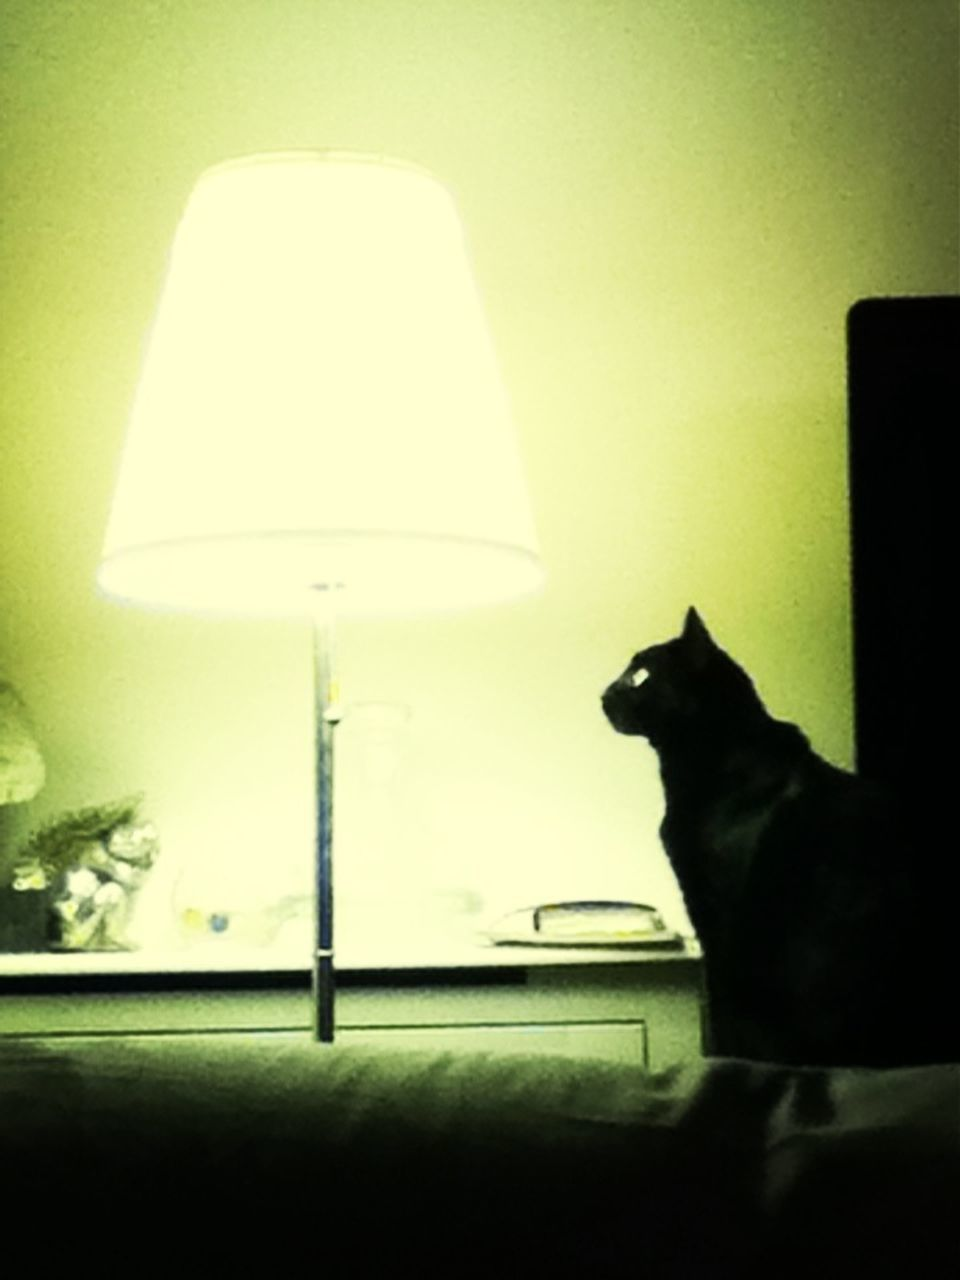 indoors, pets, domestic cat, domestic animals, one animal, lamp shade, animal themes, electric lamp, mammal, home interior, sitting, feline, no people, illuminated, close-up, day